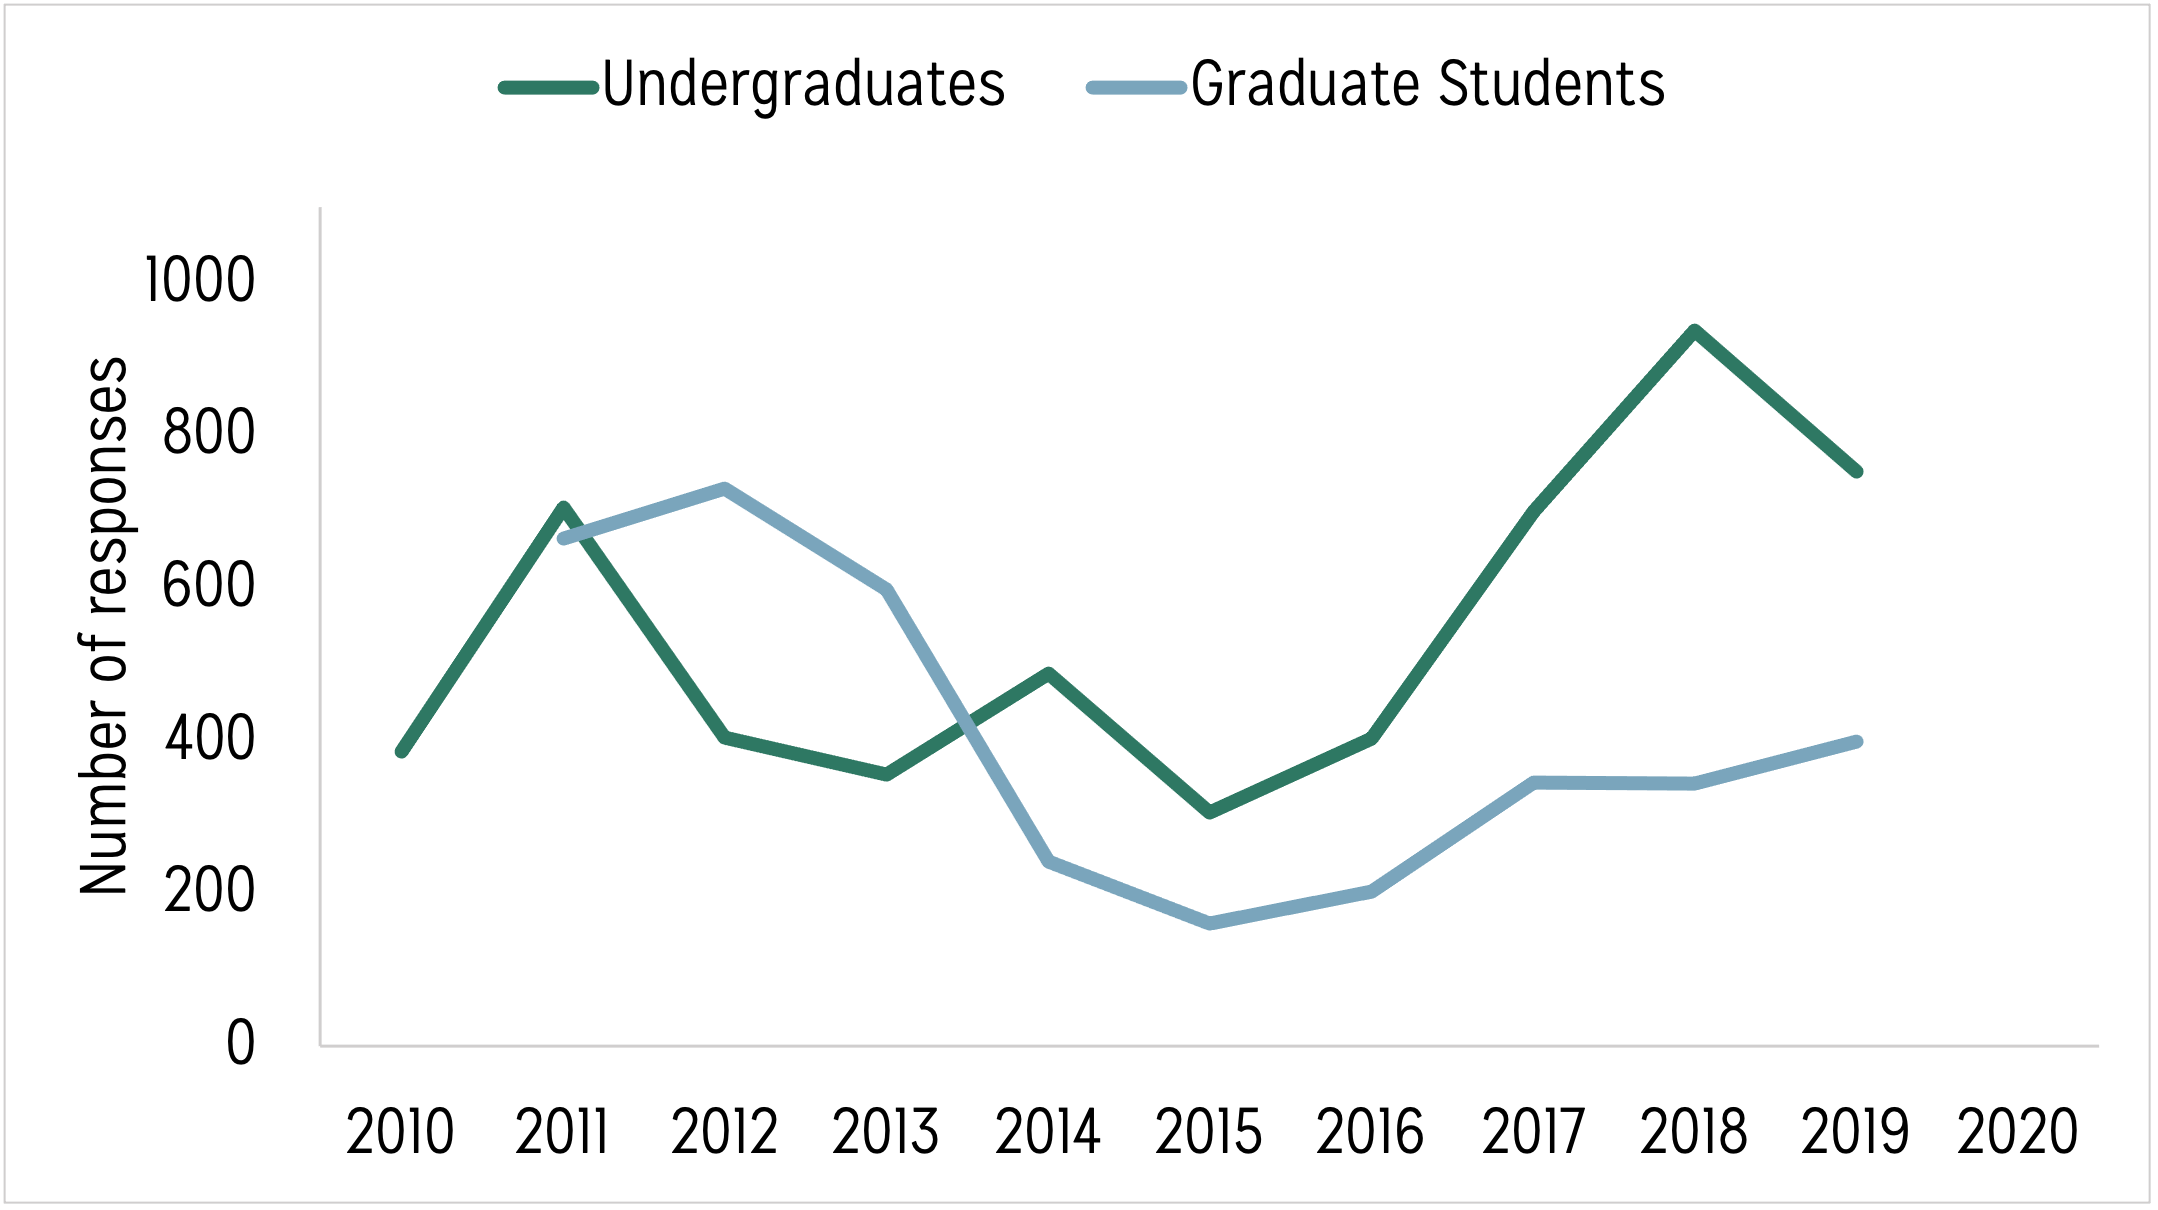 Line graph displaying two lines. One line displays undergraduate student responses to the spring Data Buddies Survey from 2010 to 2020. Another line displays graduate student responses to the spring Data Buddies Survey from 2010 to 2020